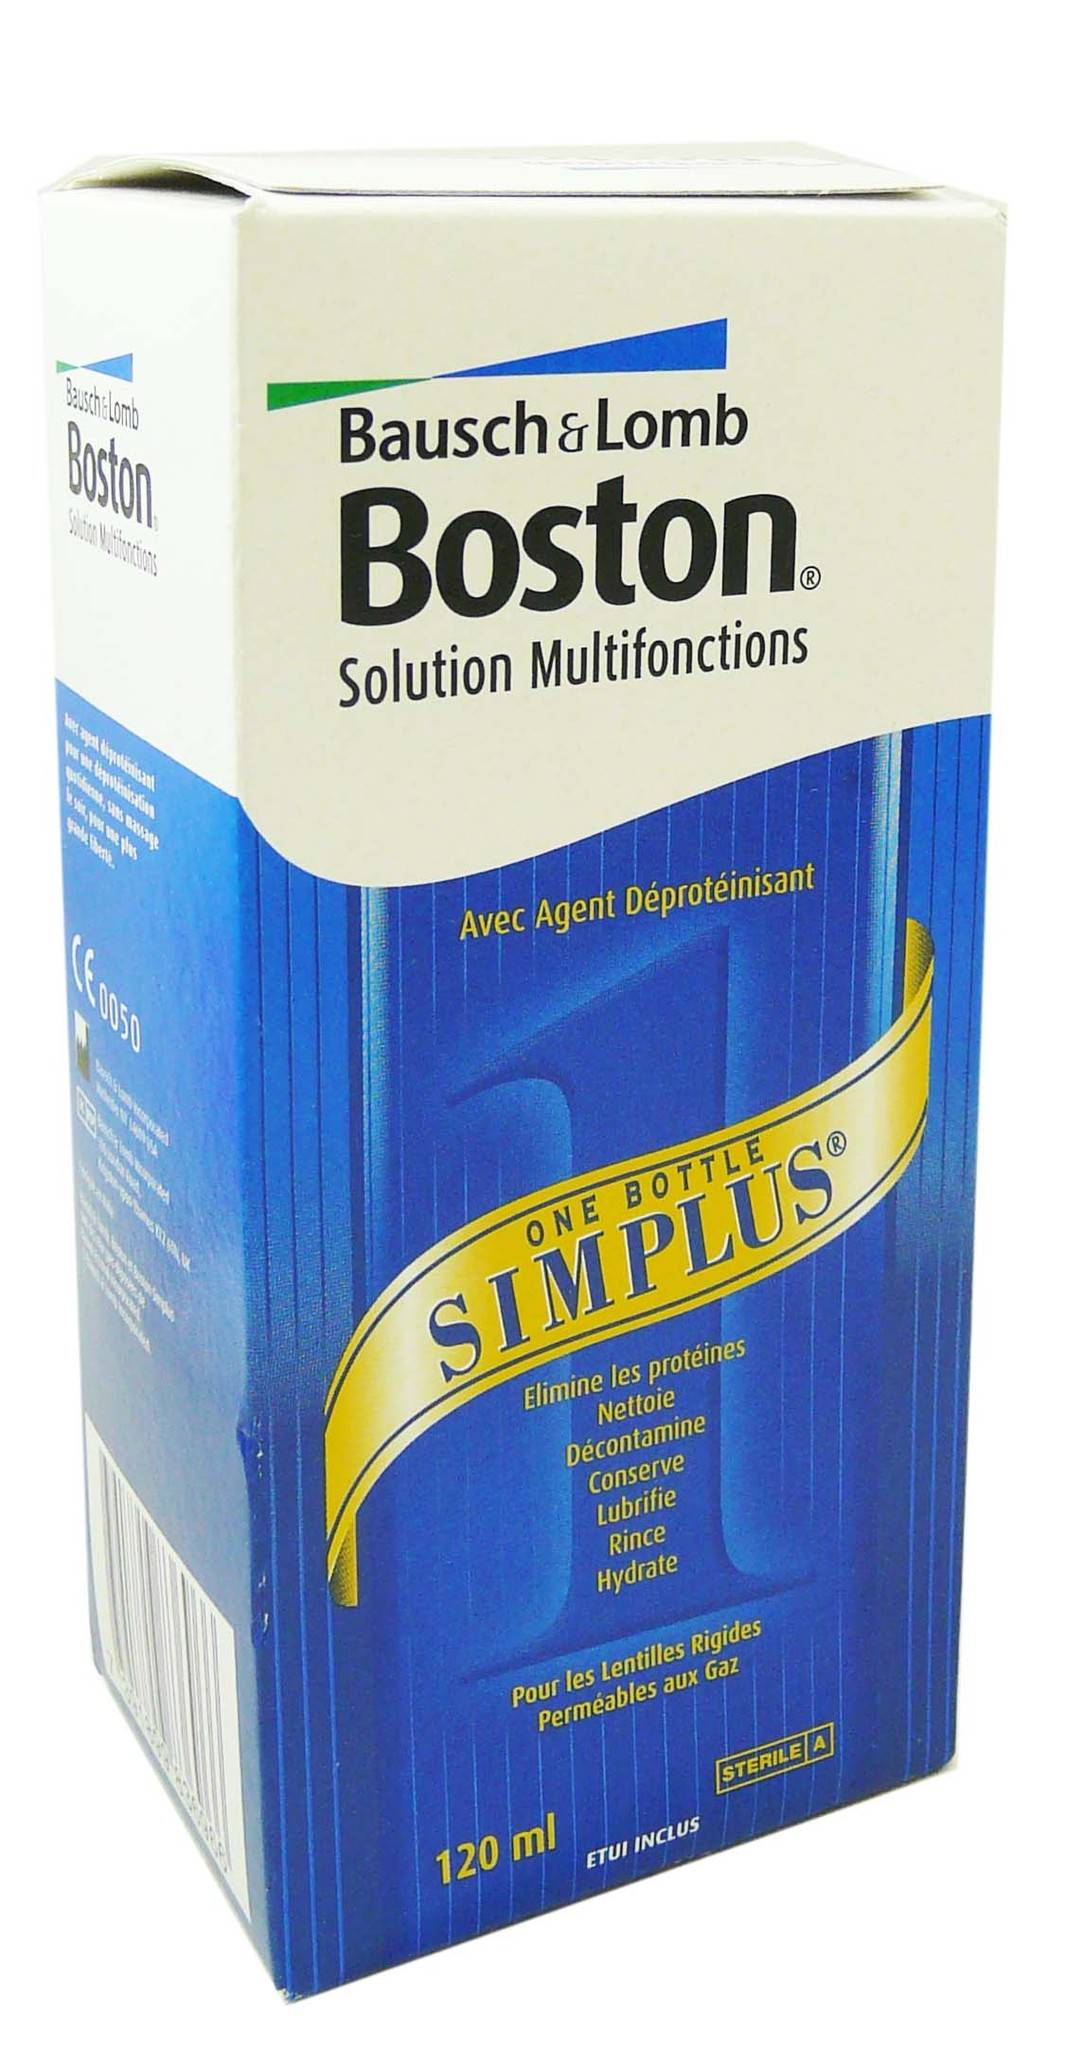 BAUSCH & LOMB Bausch lomb boston solution multifonctions120ml